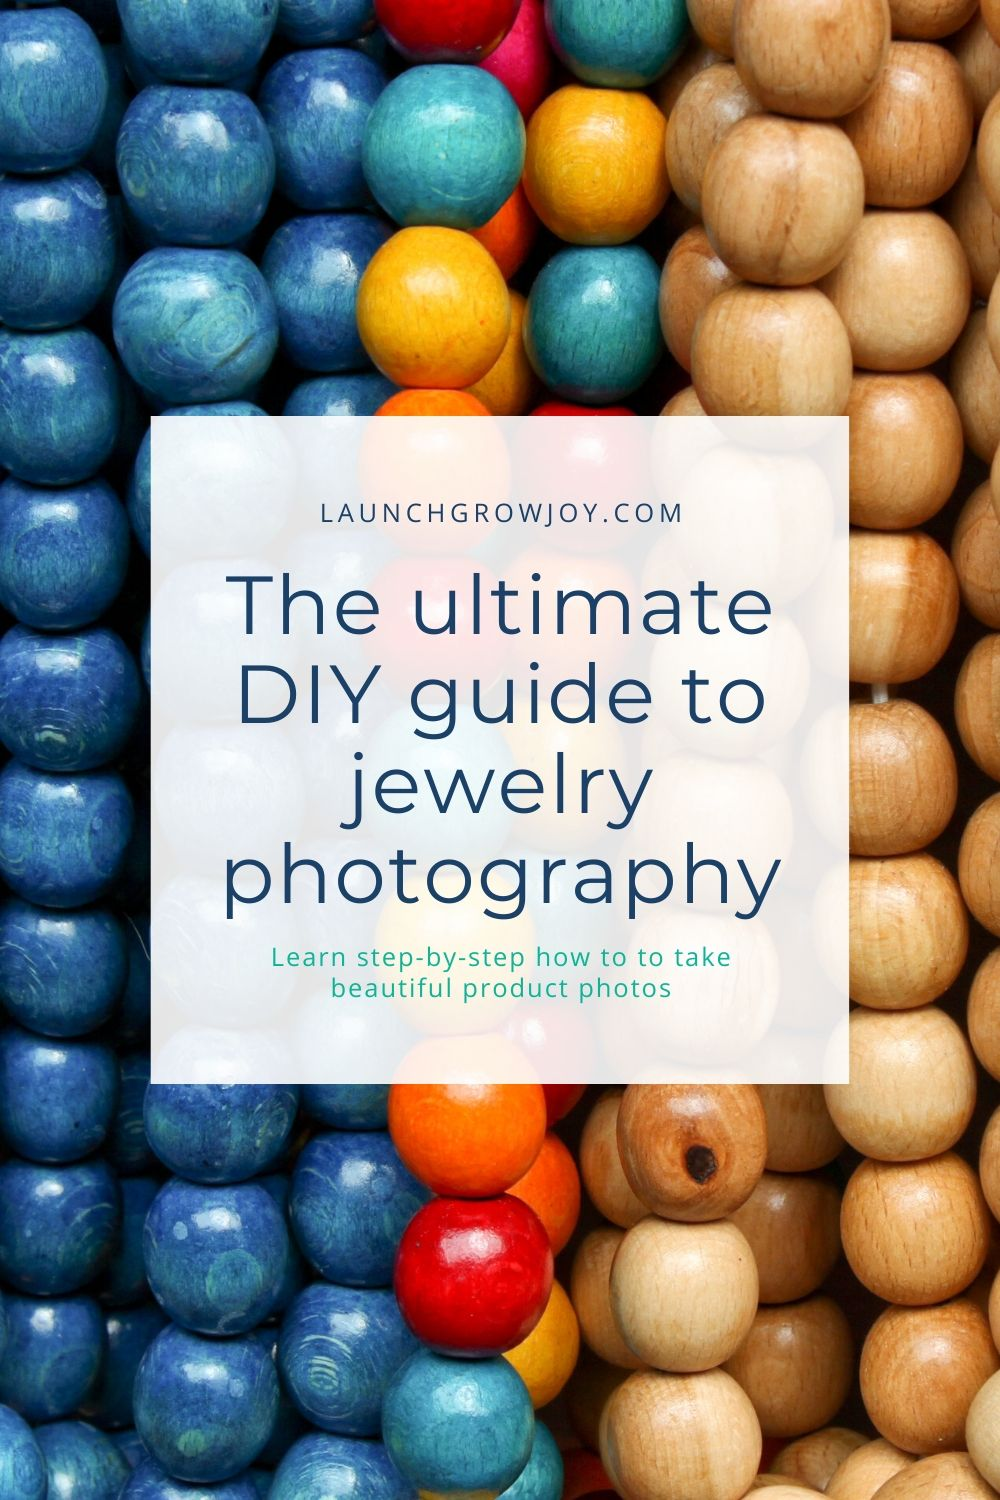 diy jewelry photography (1)